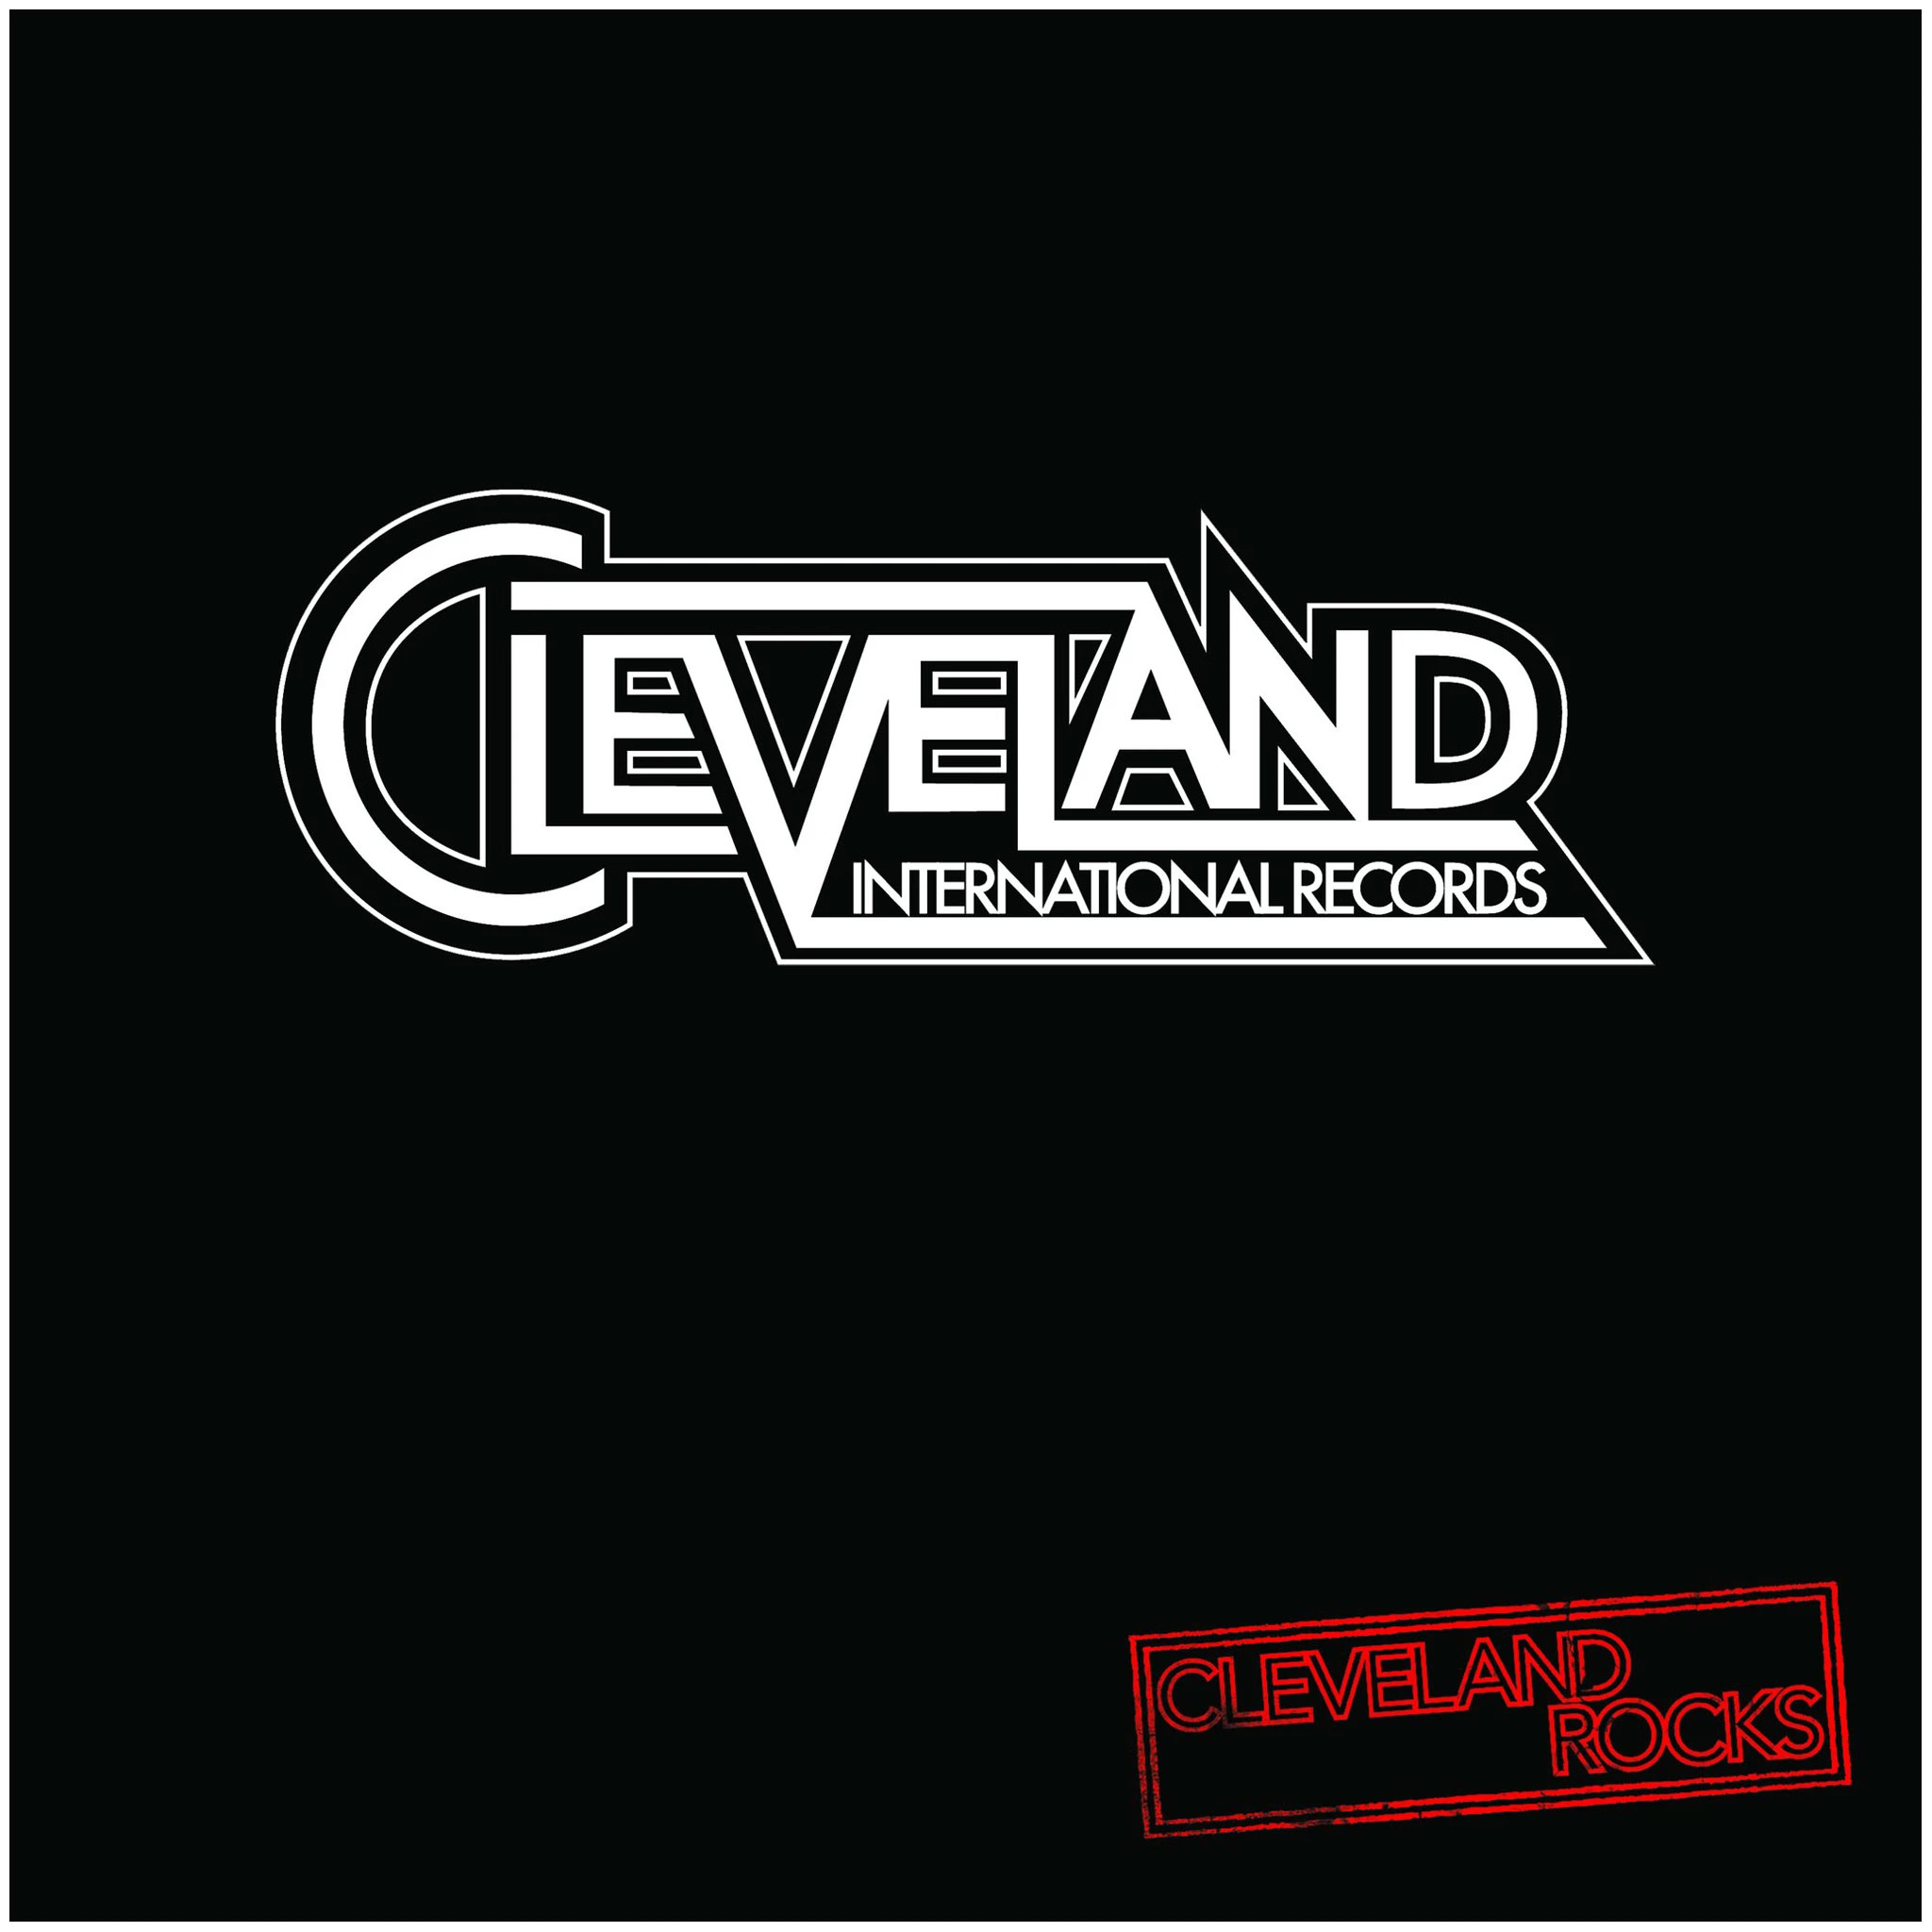 Cleveland International Records: Cleveland Rocks LP